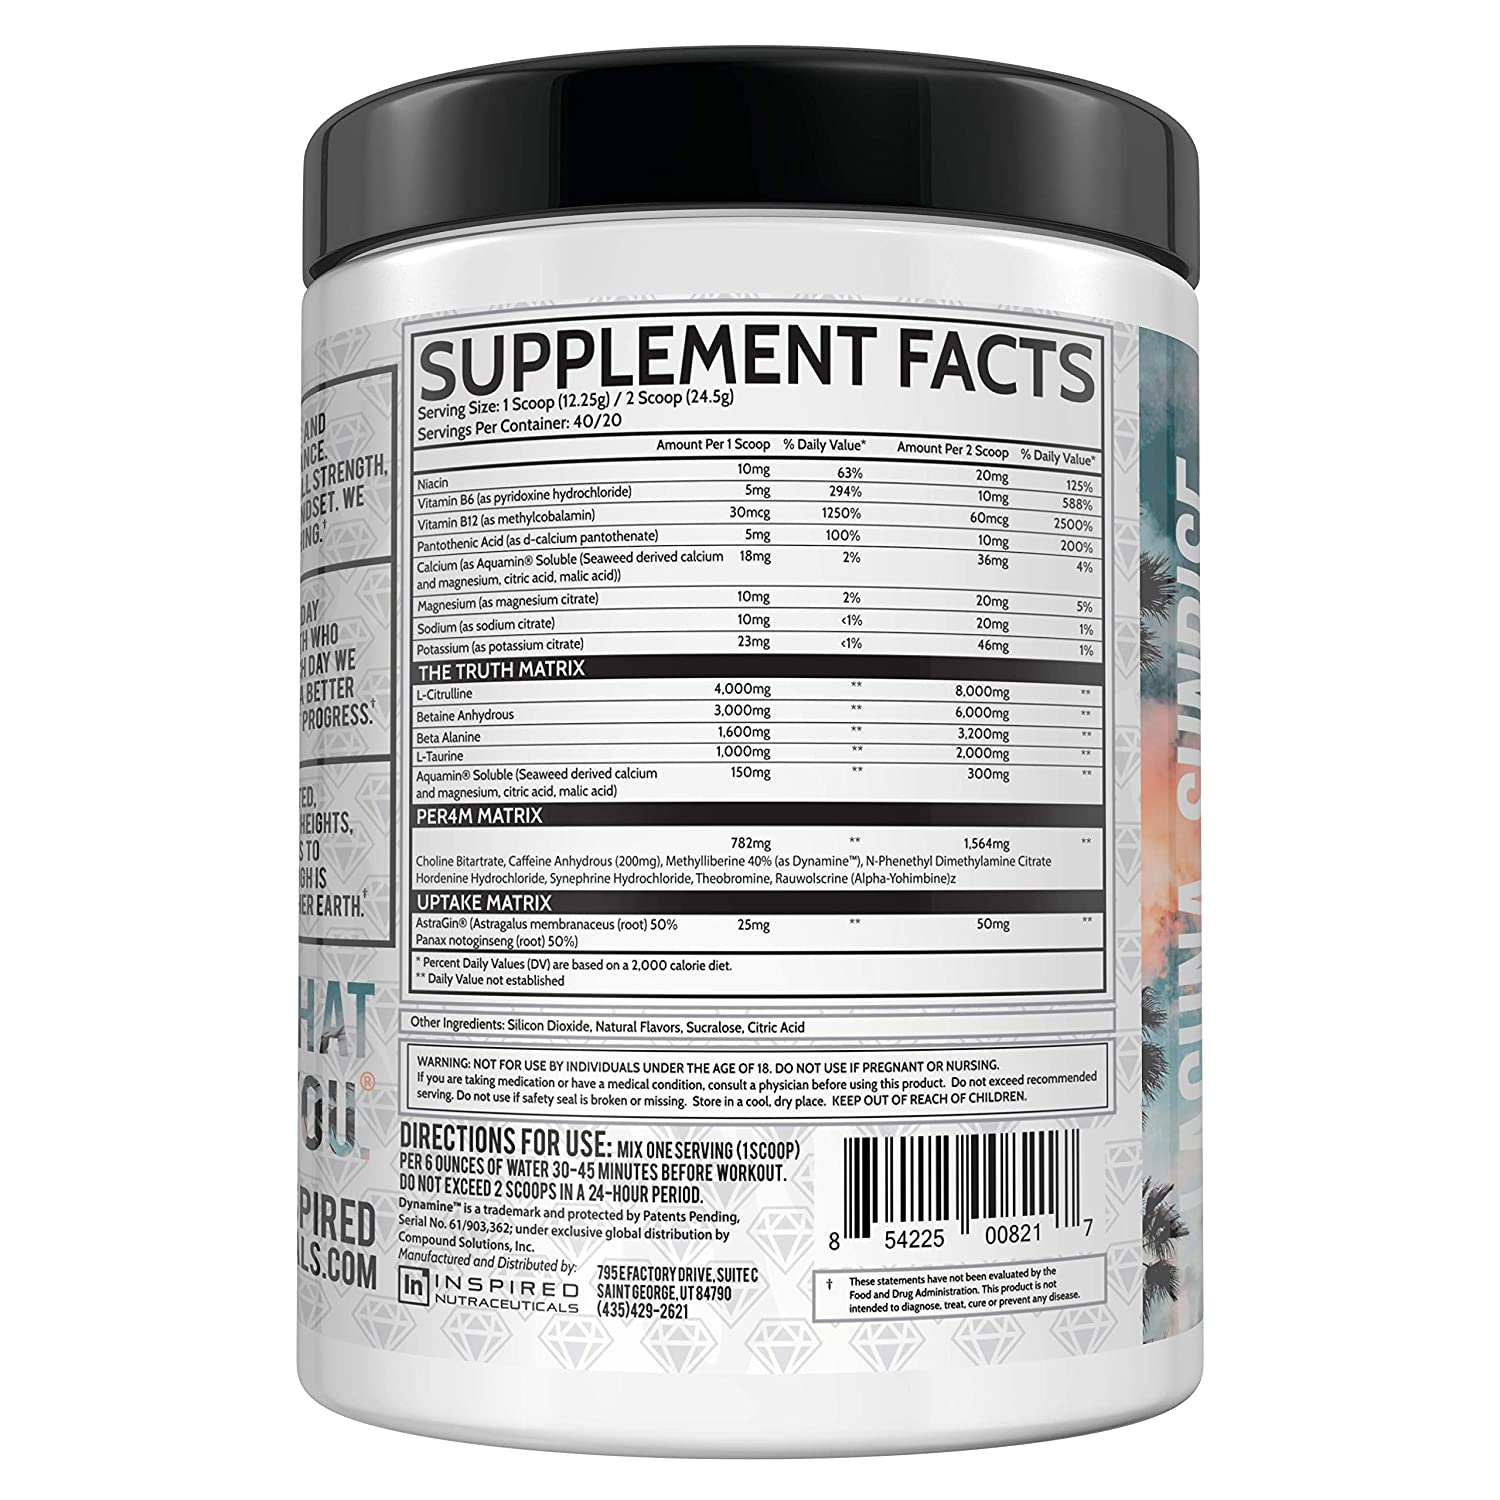 Inspired Nutraceuticals DVST8 White Diamond Reserve Extreme Focus, Pump, and Energy Pre-Workout Powder Citrulline, Betaine, Dynamine, Astragin, Electrolytes Laguna Sunrise 40 Servings